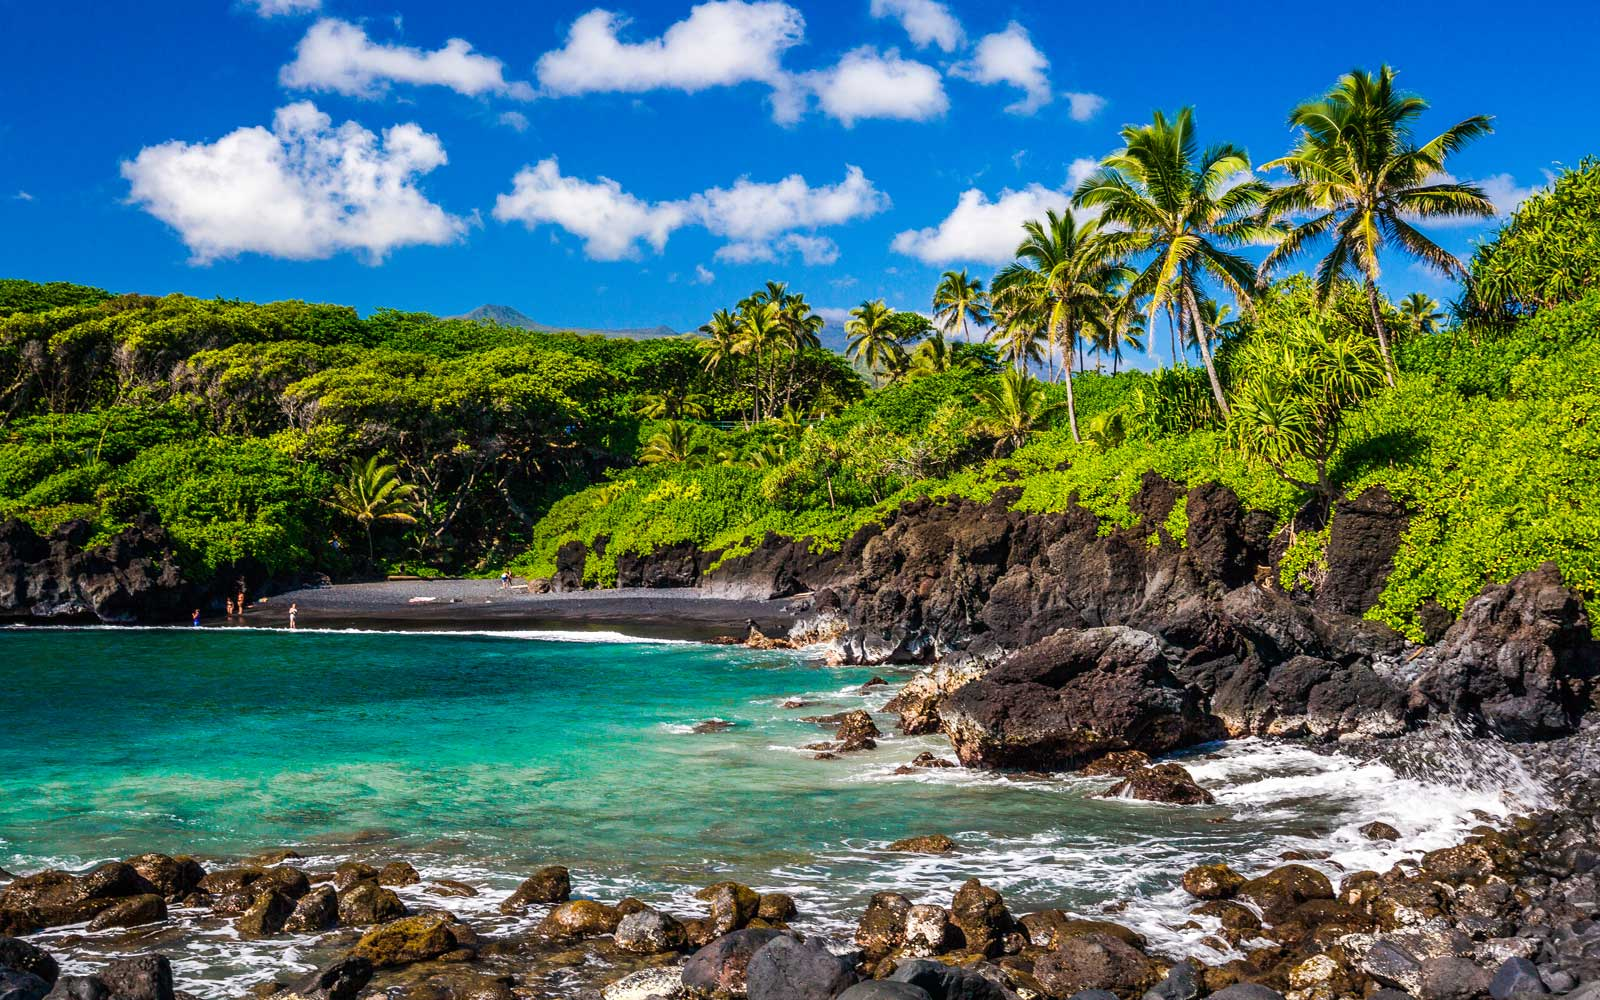 Travel to locations like Maui, Hawaii for a fraction of the price with Alaska Airlines' flash sale.